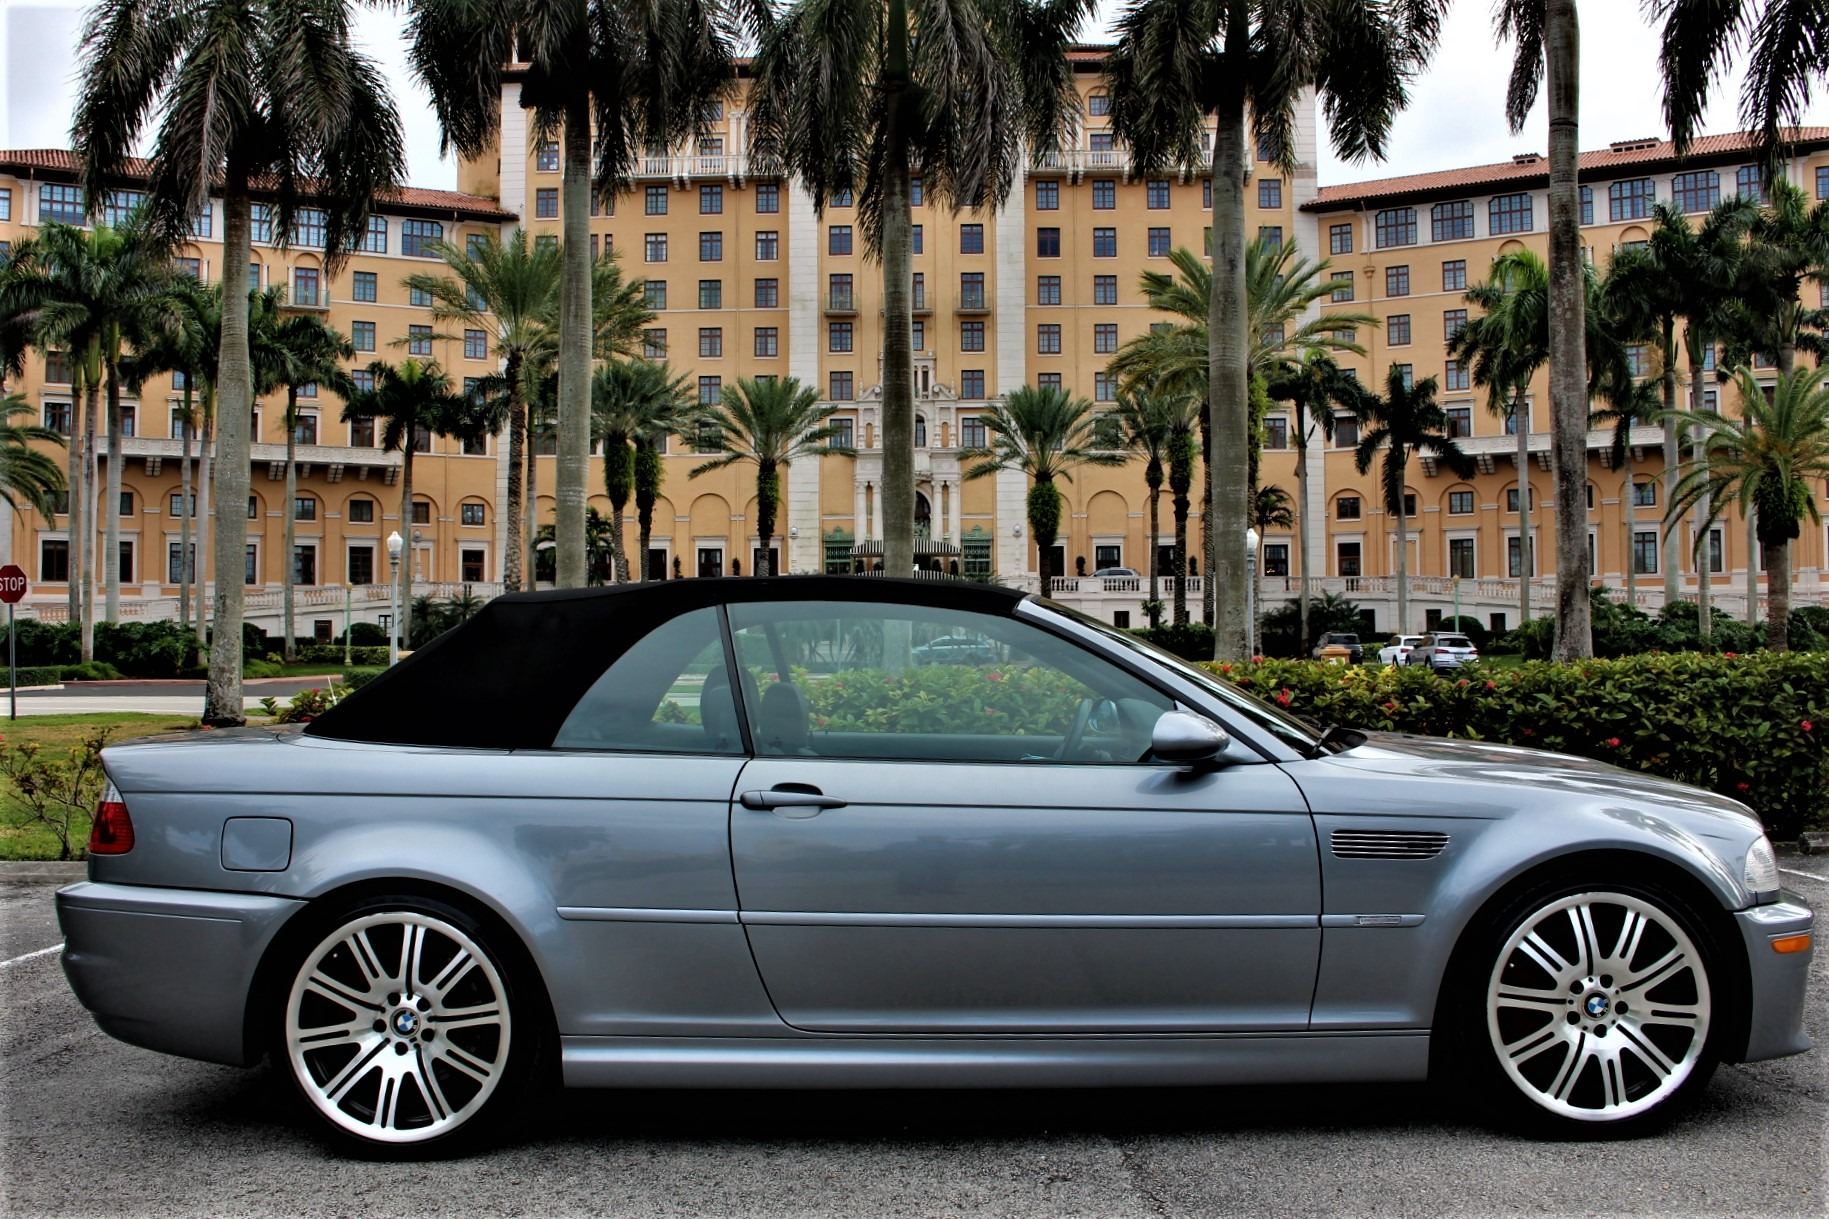 Used 2004 BMW M3 for sale Sold at The Gables Sports Cars in Miami FL 33146 1